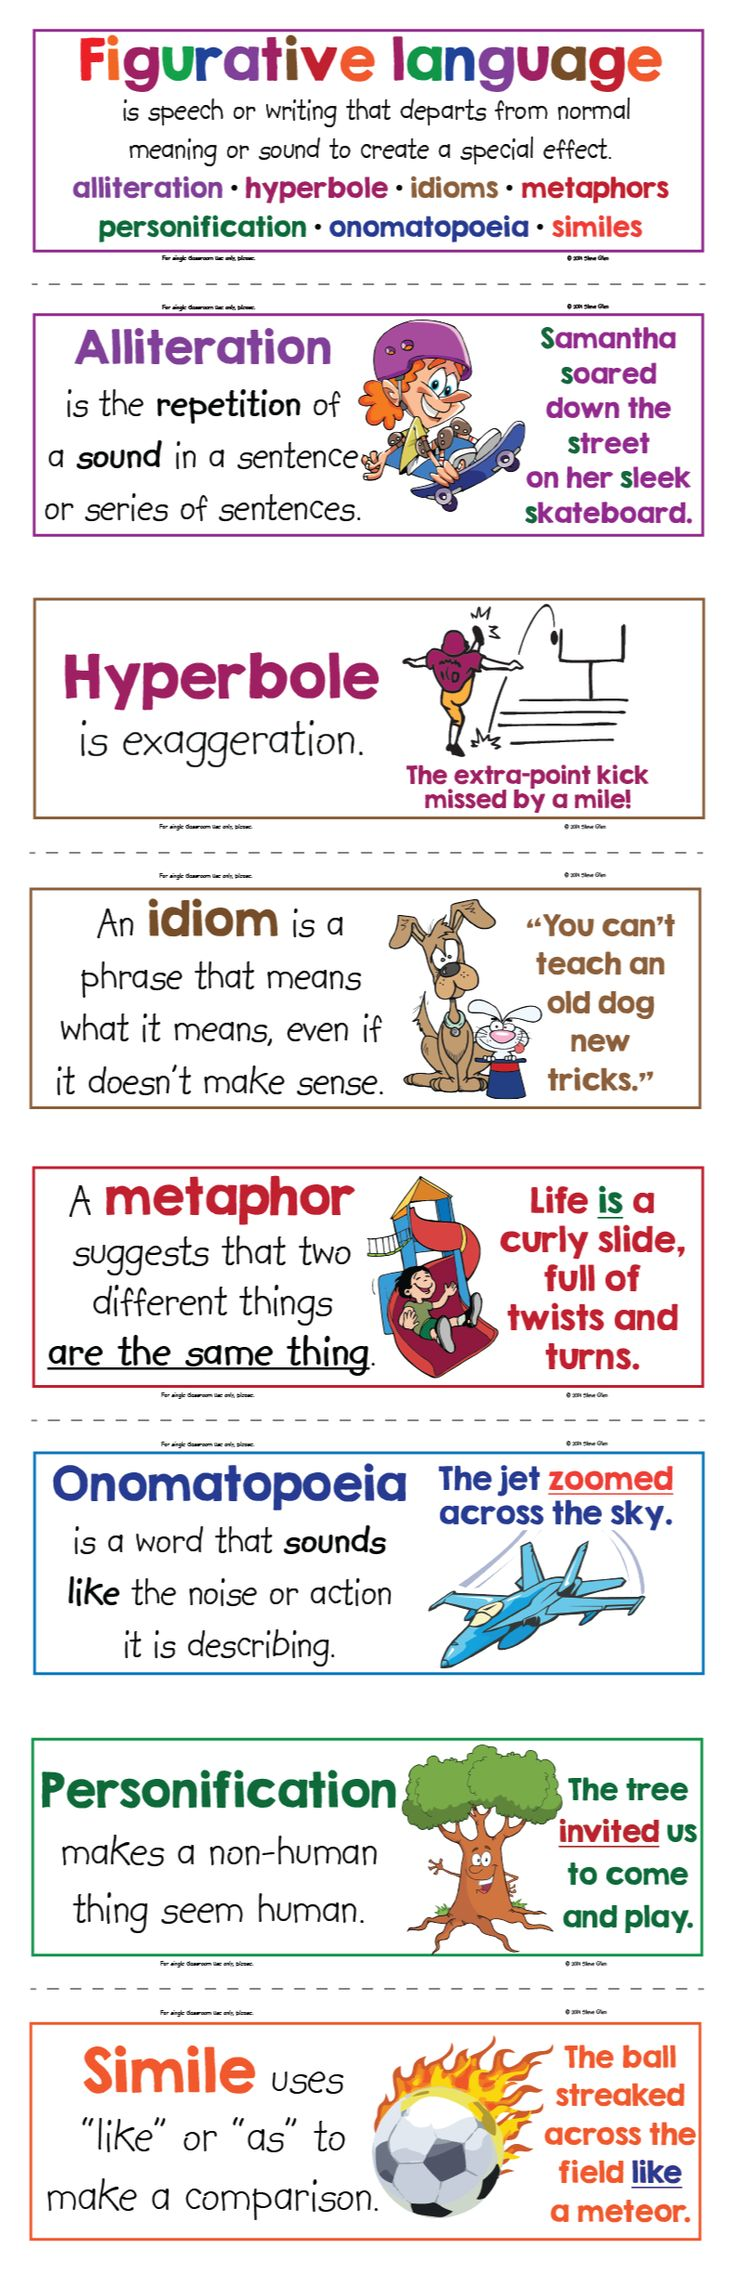 worksheet What Is A Metaphor Math Worksheet 101 best similemetaphor images on pinterest school similes and powers of 10 math face off 5 nbt 2